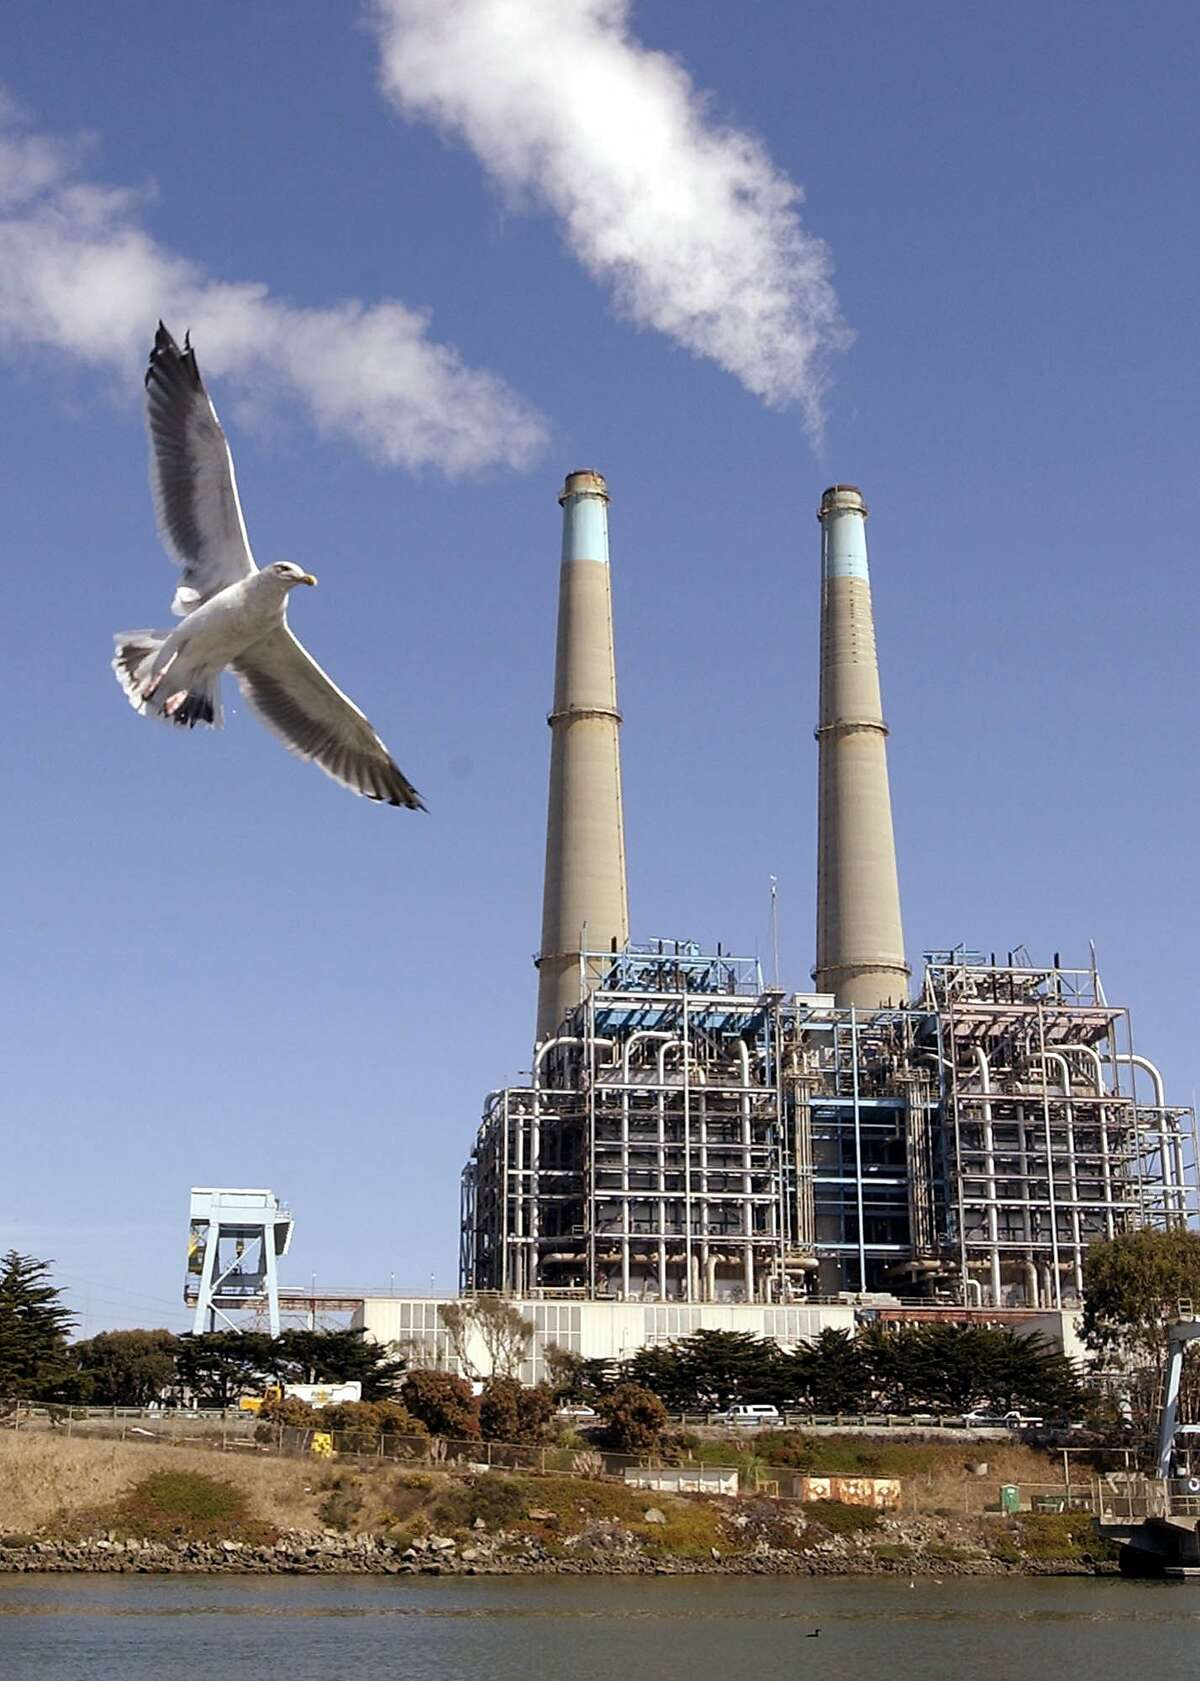 A seagull flies in front of a power plant in Watsonville, Calif., Tuesday, Sept. 17, 2002. The nation's industrial sector, hardest hit by last year's recession, stumbled in August, with production falling for the first time in eight months. Much of the weakness came from a sharp 2.5 percent drop in output at gas and electric utilities. (AP Photo/Paul Sakuma)Ran on: 02-19-2006 Power plants like this one in Watsonville may be subject to limits on the amount of carbon dioxide they can release under a program being considered by state utilities regulators.Ran on: 02-19-2006